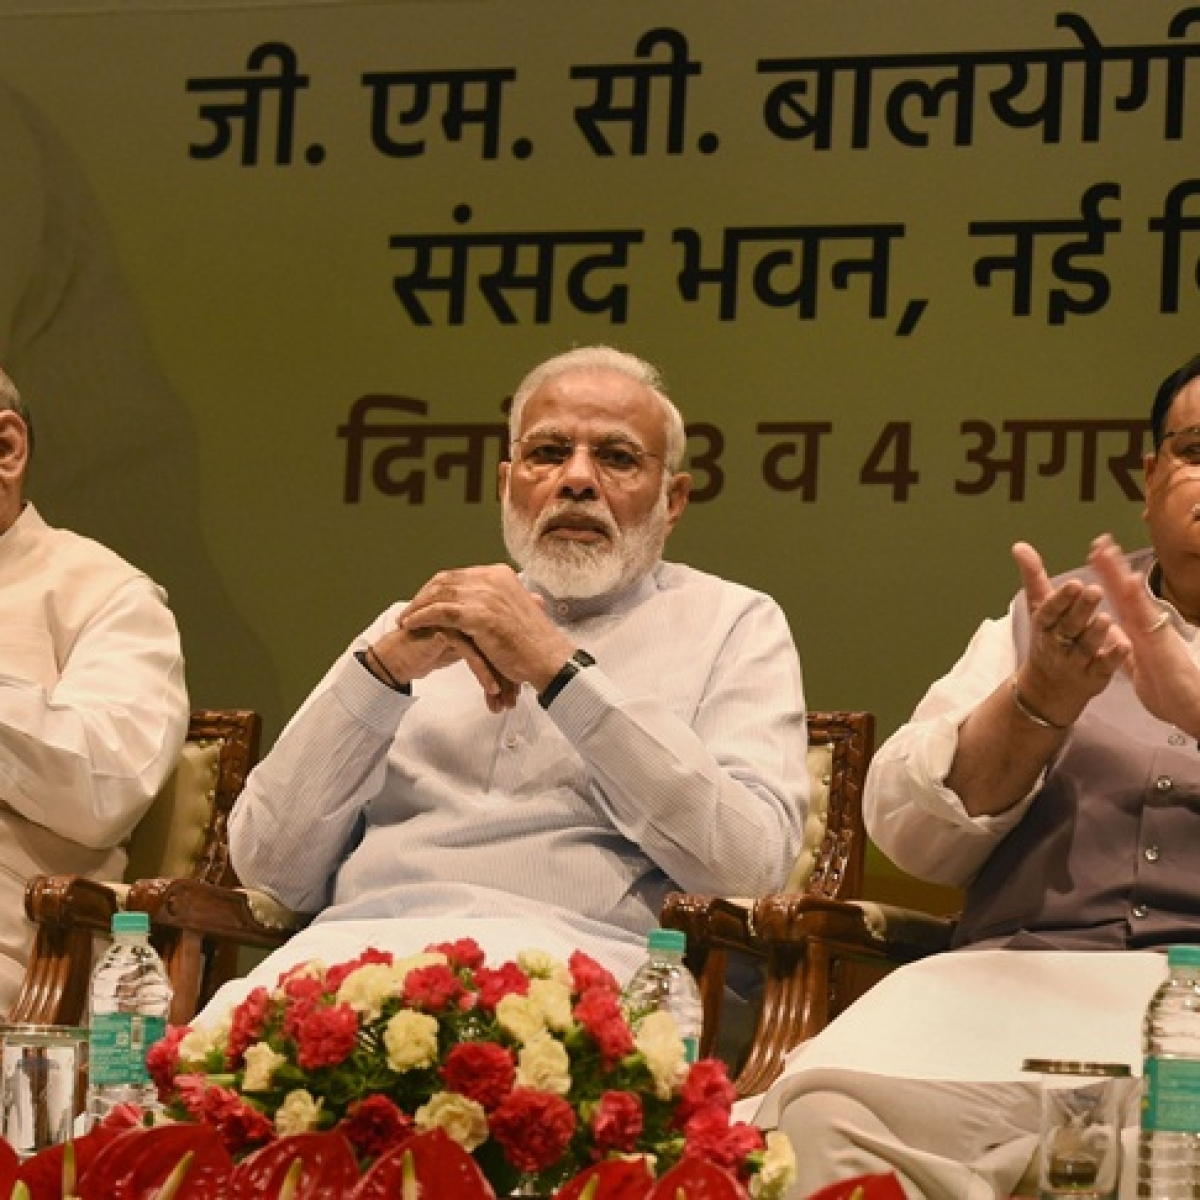 Work to win over even those who did not vote for you: PM Narendra Modi to BJP MPs